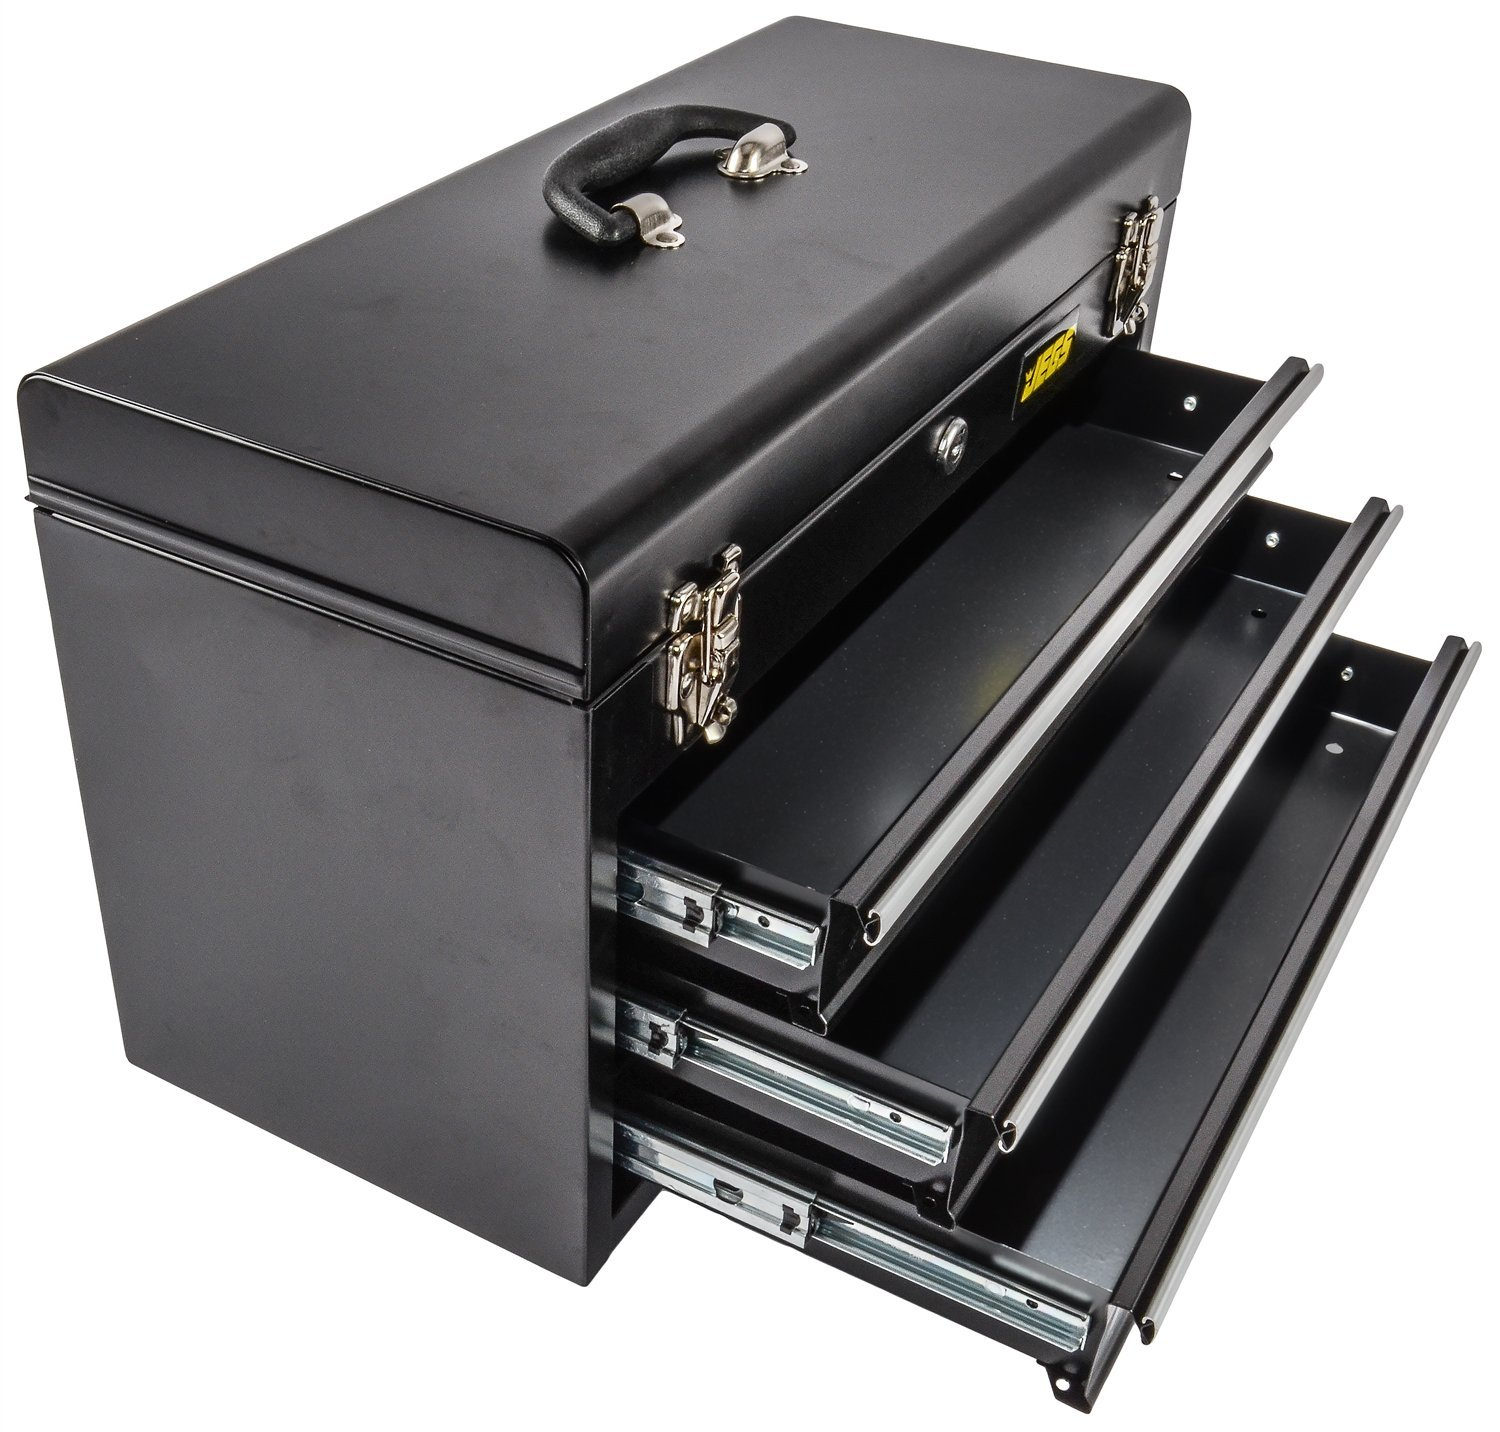 JEGS 81400 Black 3 Drawer Professional Tool Box for Garage, Truck, or Trailer by JEGS